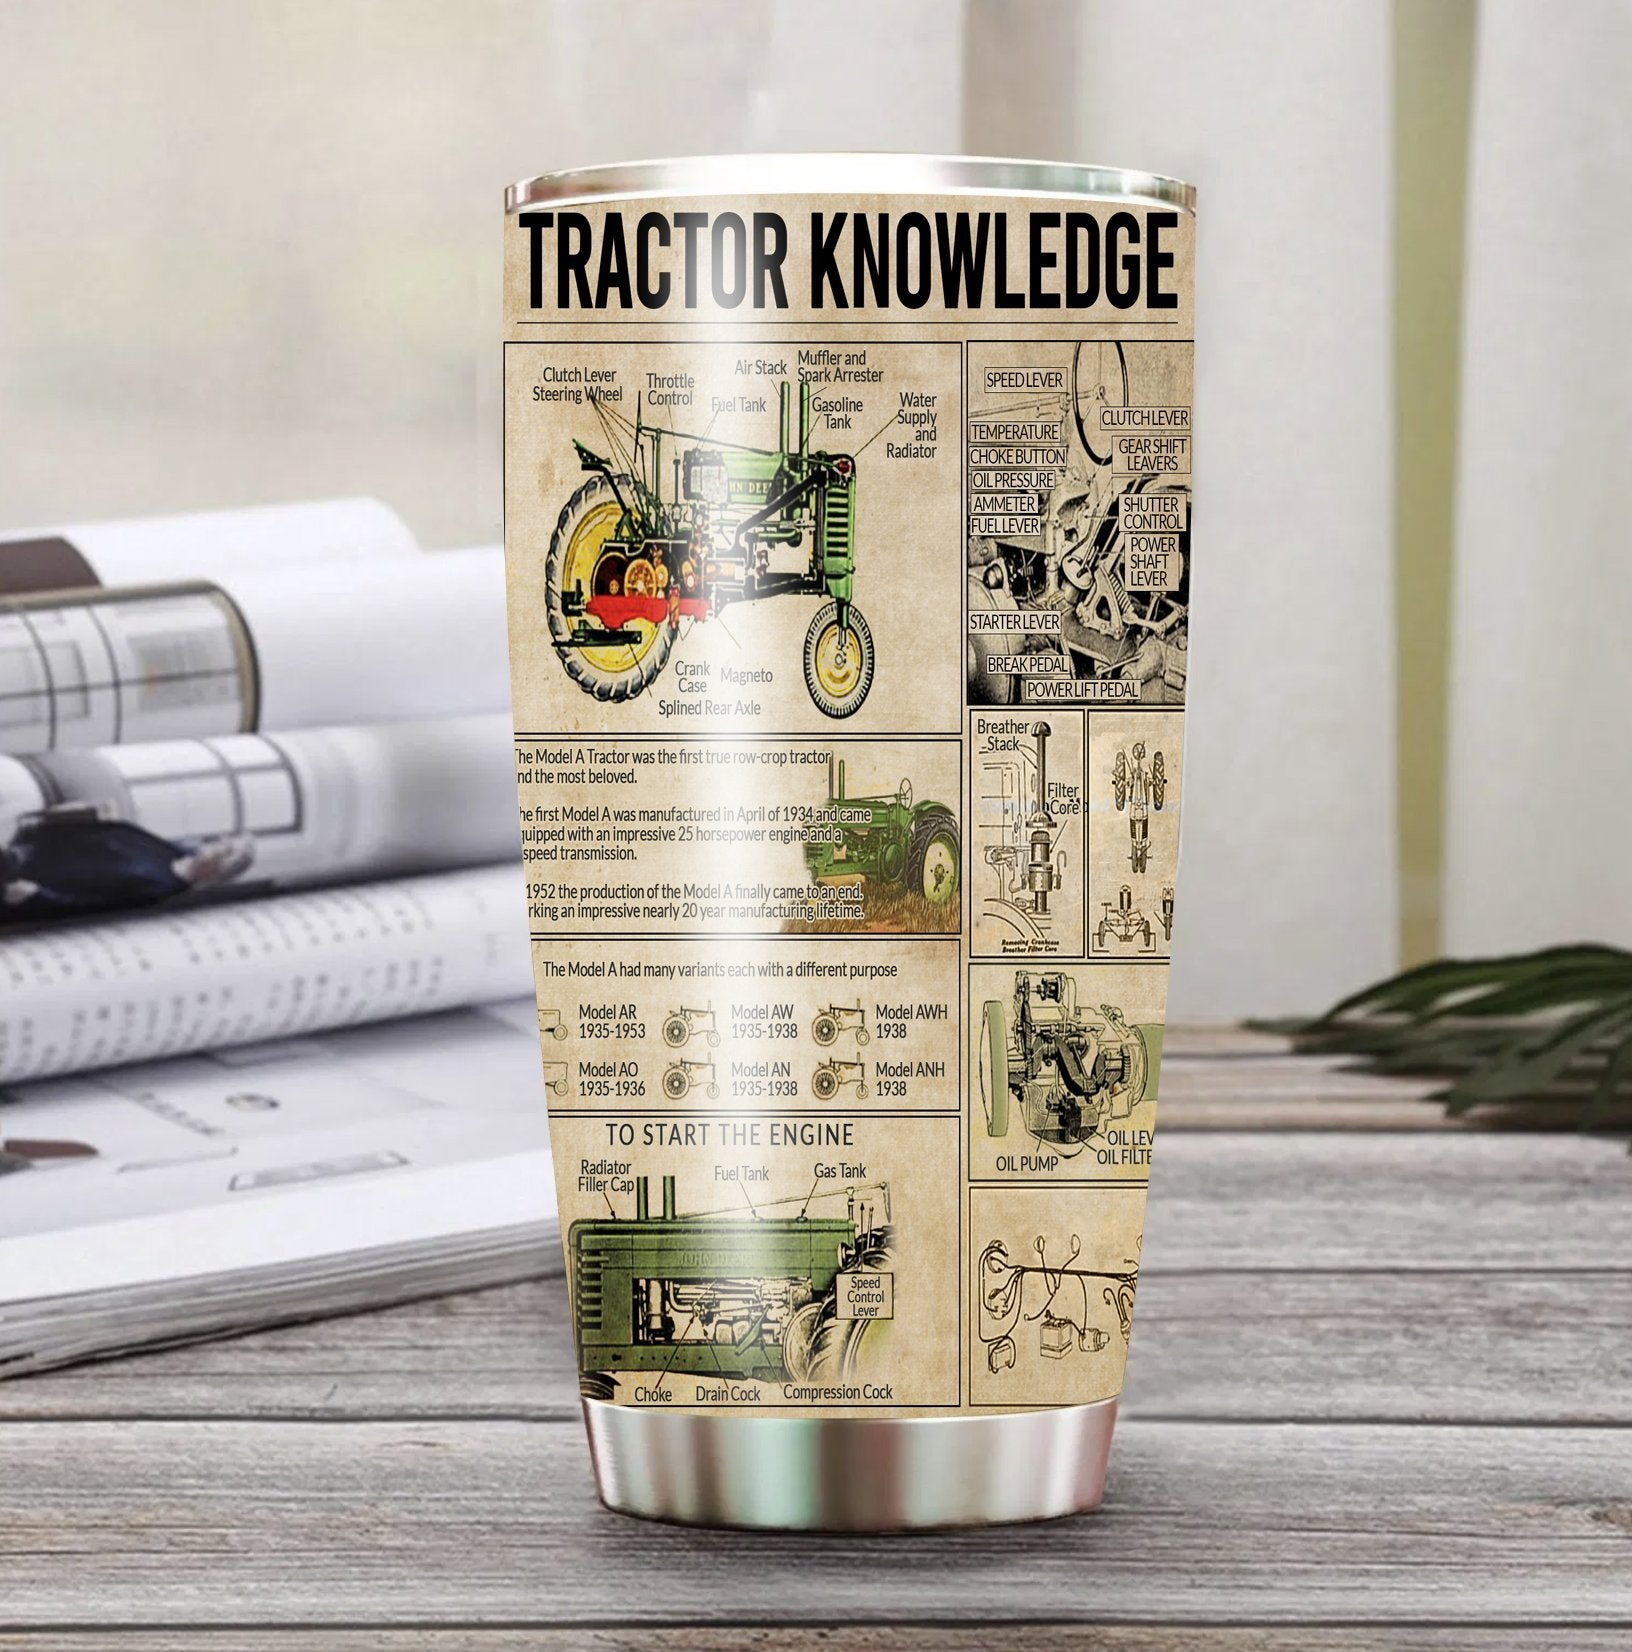 Model A Tractor Knowledge Stainless Steel Tumbler